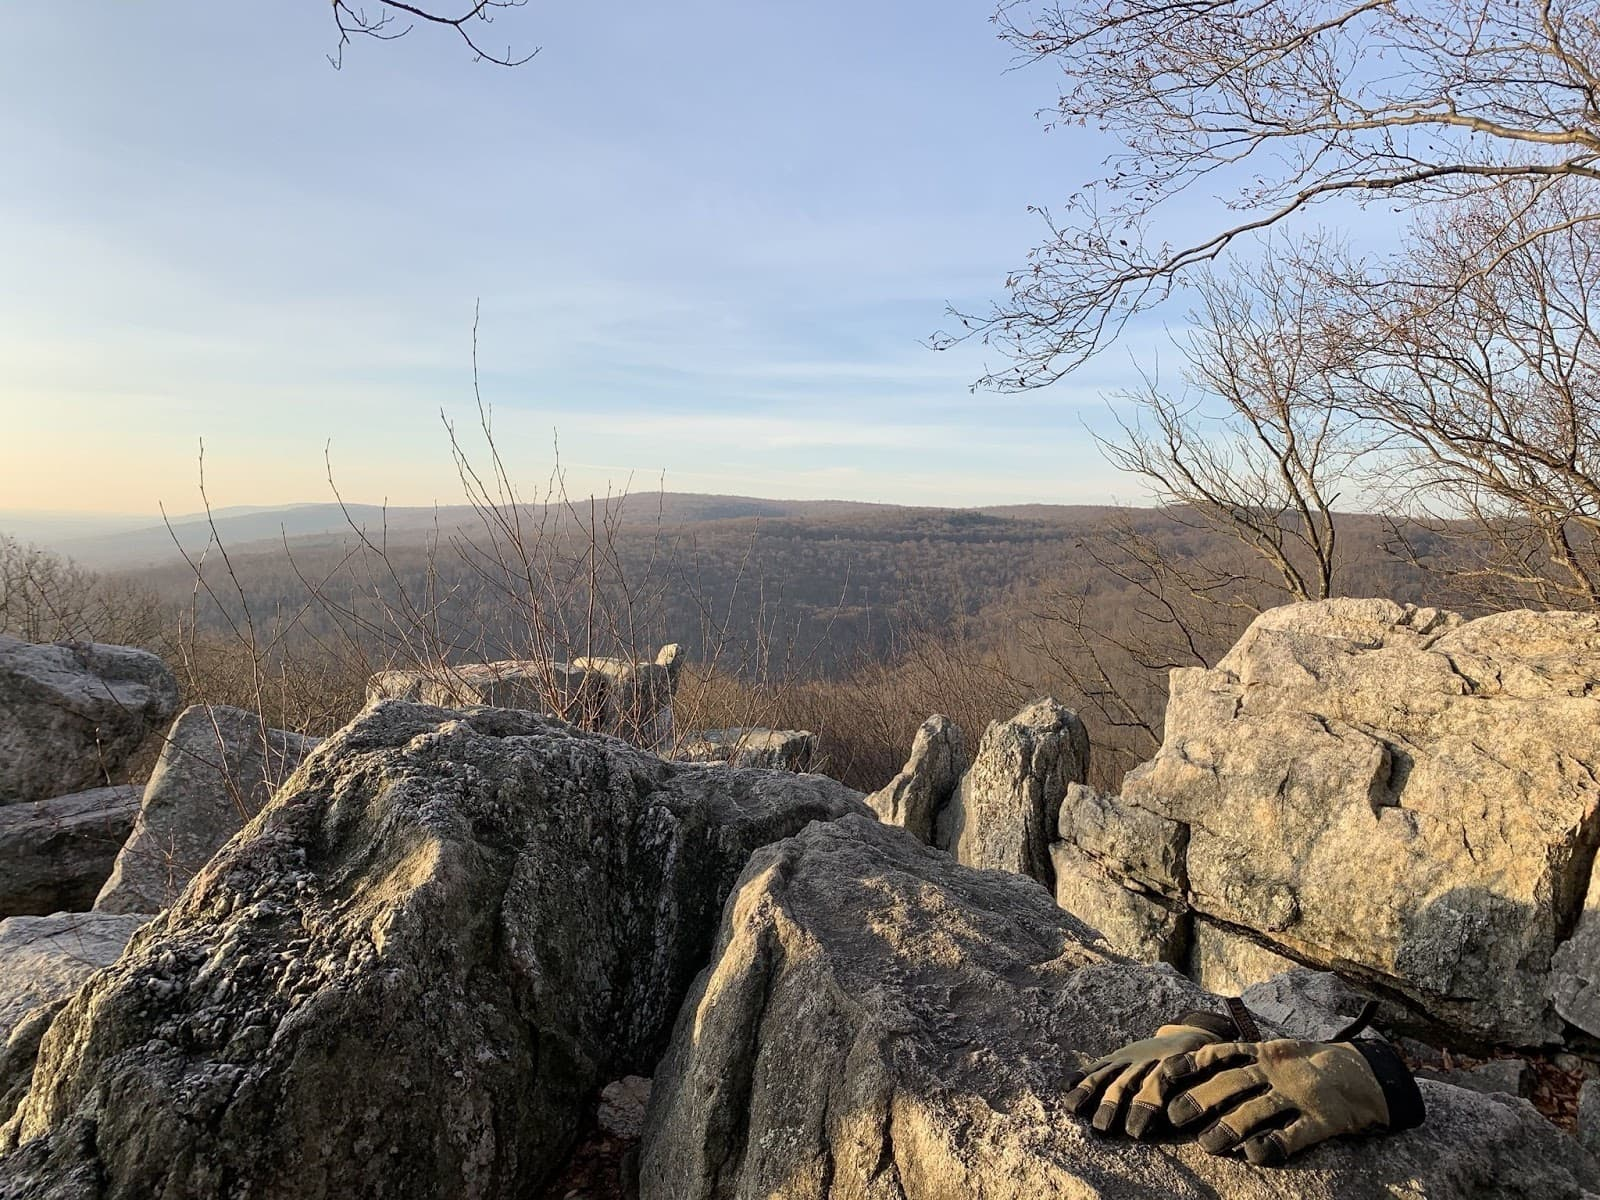 Wolf Rock/Chimney Rock Loop // Looking for the best hikes in Maryland? Here are our 7 favorite Maryland trails including distances, descriptions, and local tips.